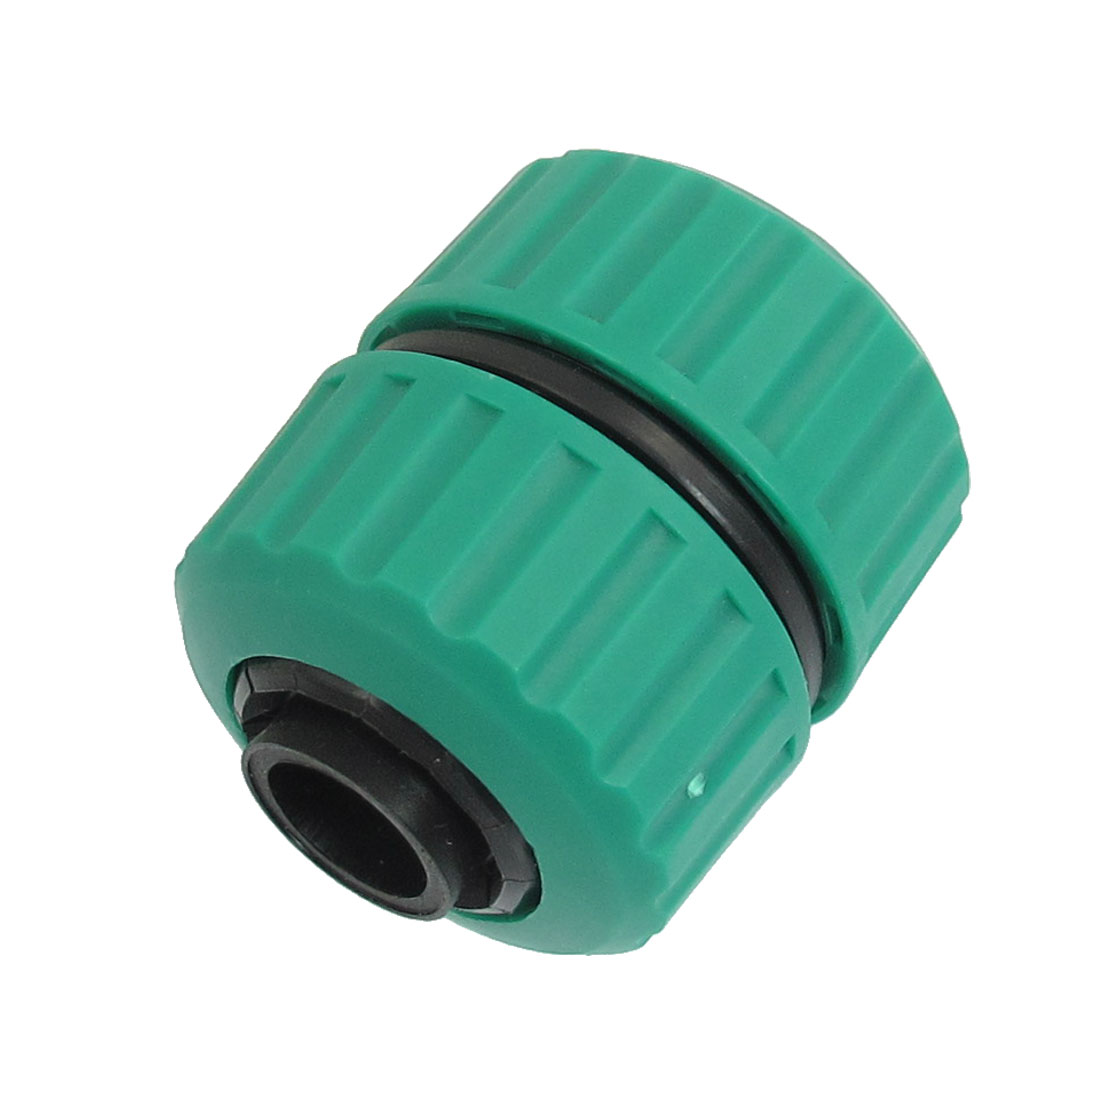 Plastic Garden Orchard 22mm-26mm OD Hose Connector Green Black